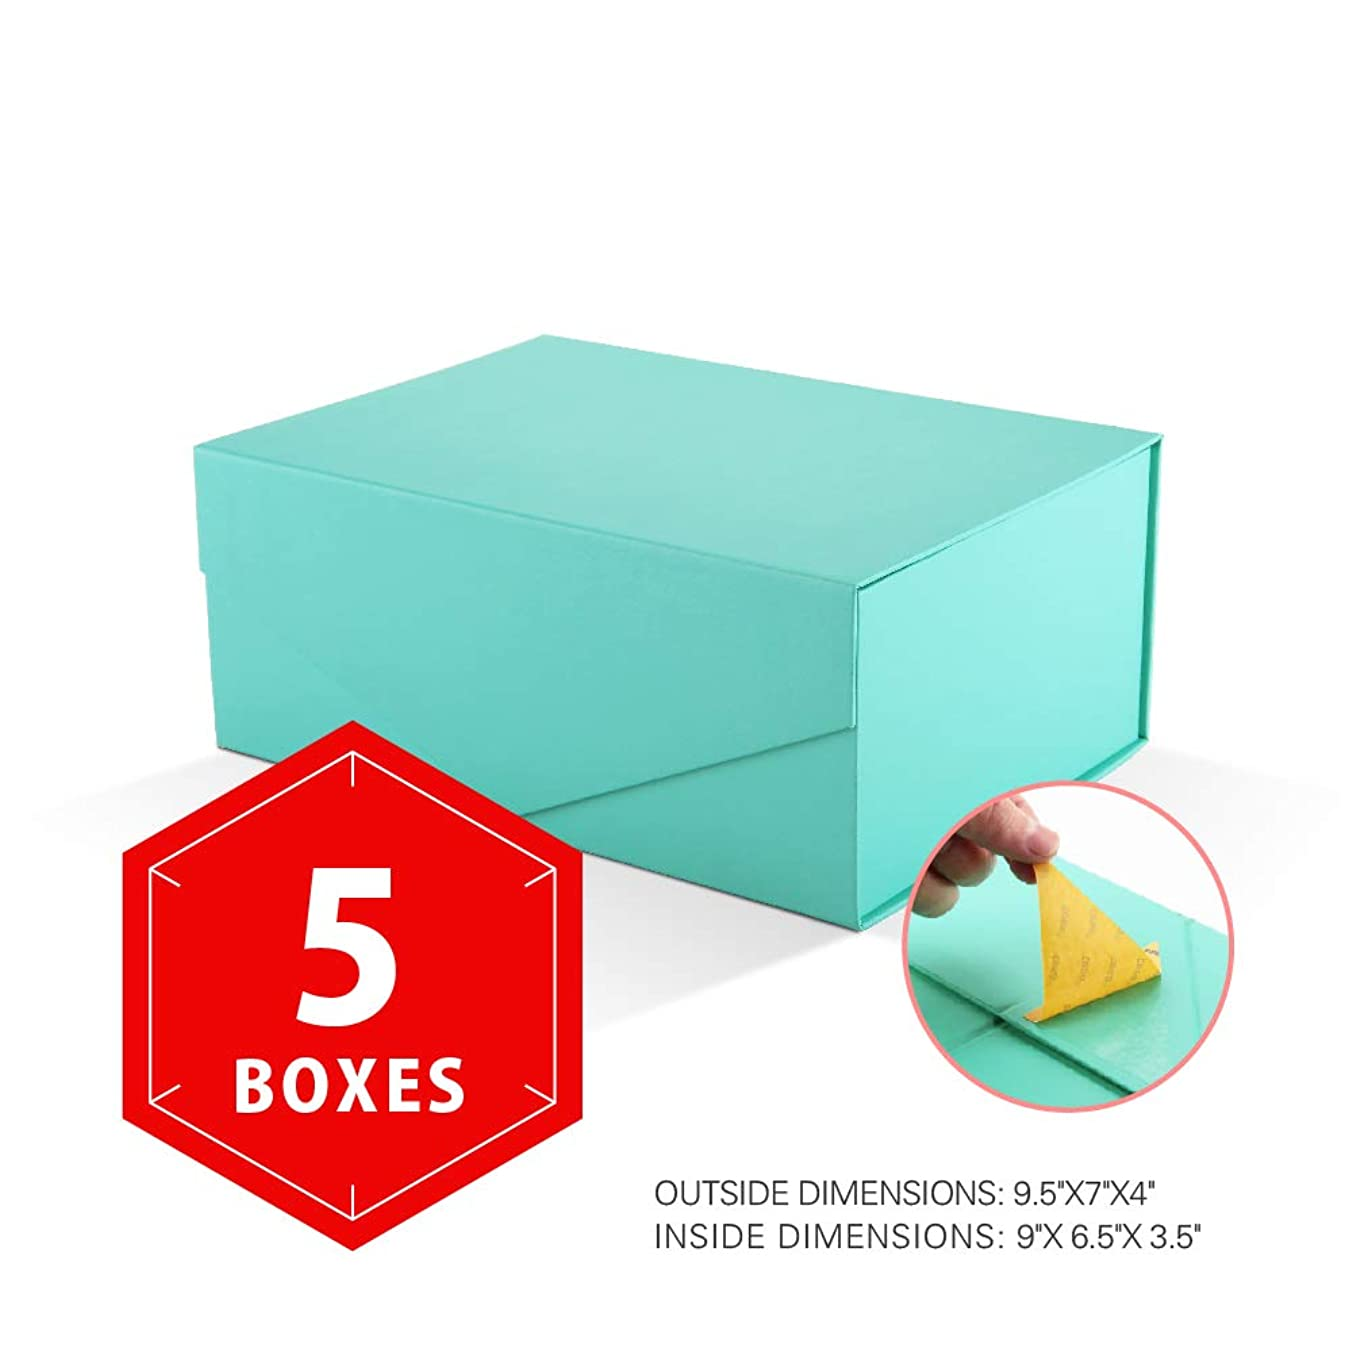 PACKHOME Gift Boxes Rectangular 9.5x7x4 Inches, Bridesmaid Boxes Rectangle Collapsible Boxes with Magnetic Lid for Gift Packaging (Matte Turquoise with Embossing, 5 Boxes)